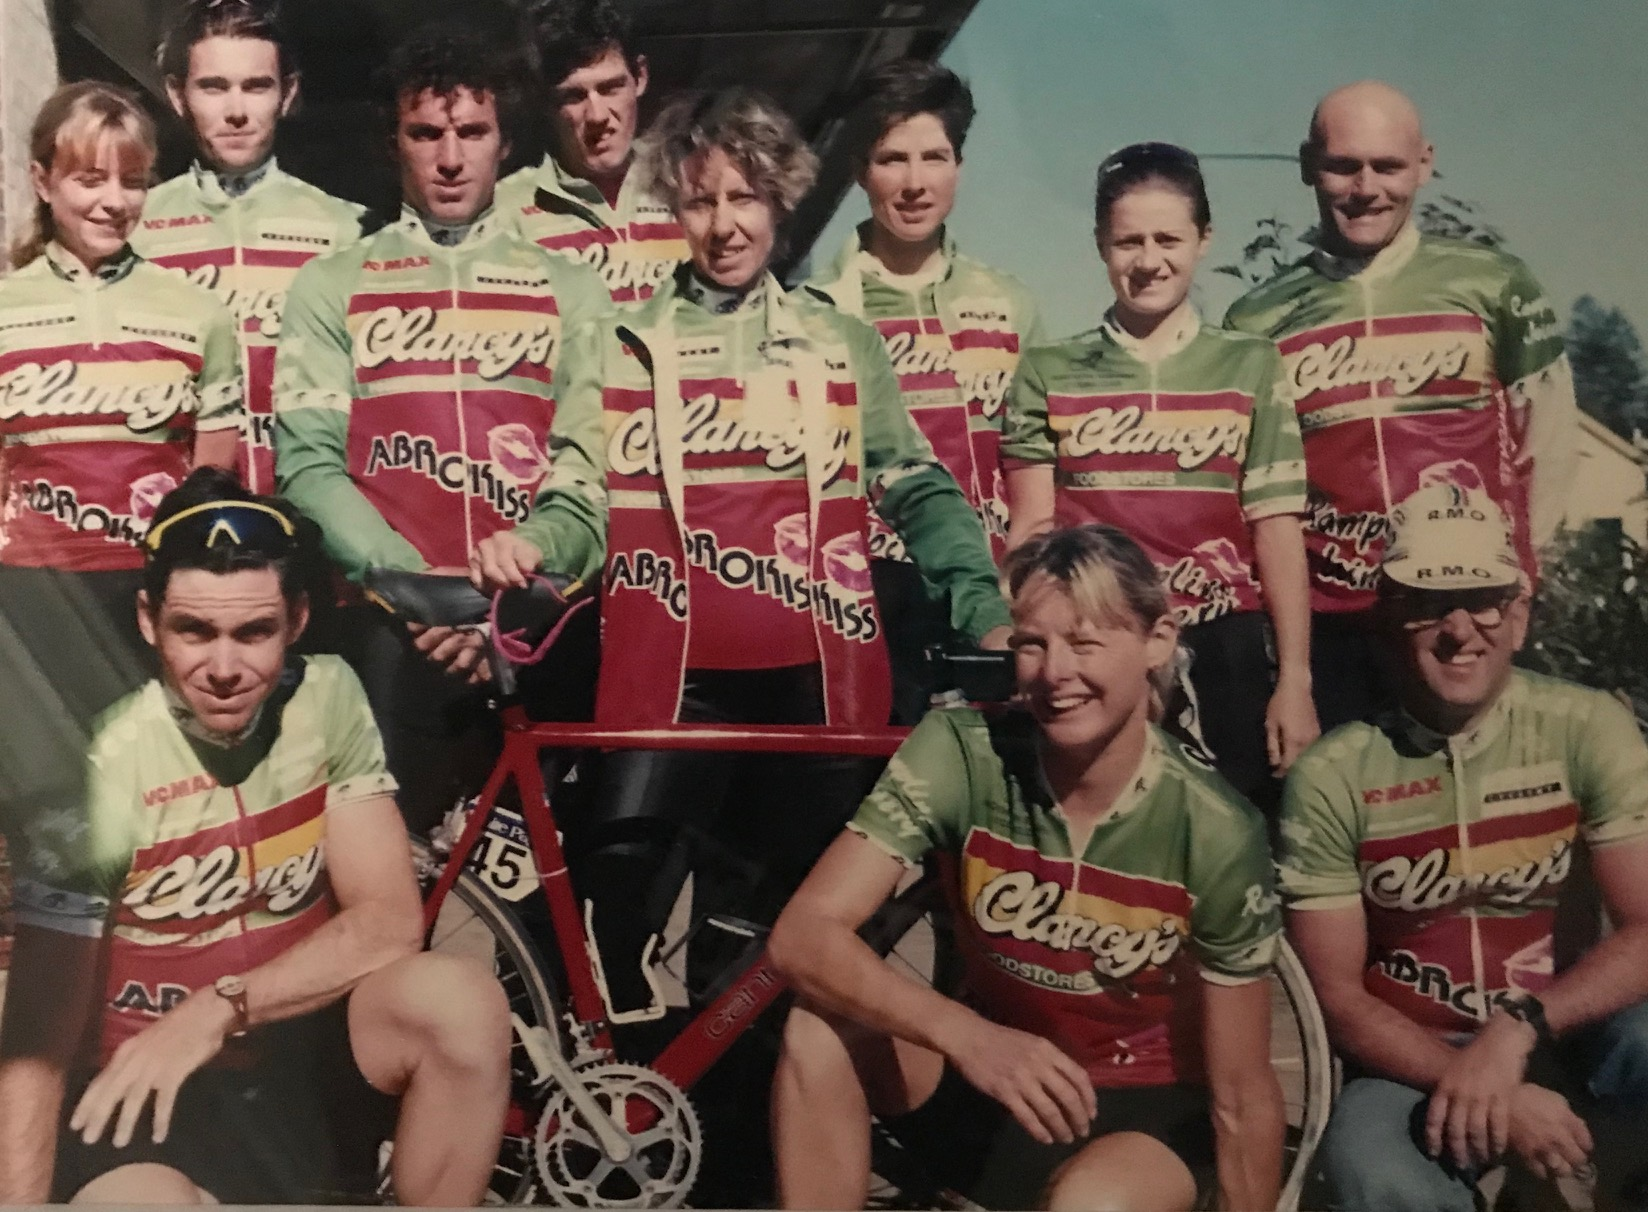 In 1994 and the White Pages Tour @ Bundanoon to Canberra Stage Race - Northern Sydney CC team was sponsored by Clancys Foodstores & Abrokiss (hence the red lips) with both a womens & mens team that included Rachel Appleton, Steve Stannard (front), Phil Chapman, Laurie Vignes, Ben Litchfield, Rhonda Craigie, Nadia Frischkneckt, Lucy Lykke, Bruce Boulton (masseuse), Catherine Dawson (front) & Mike O'Reilly (DS)